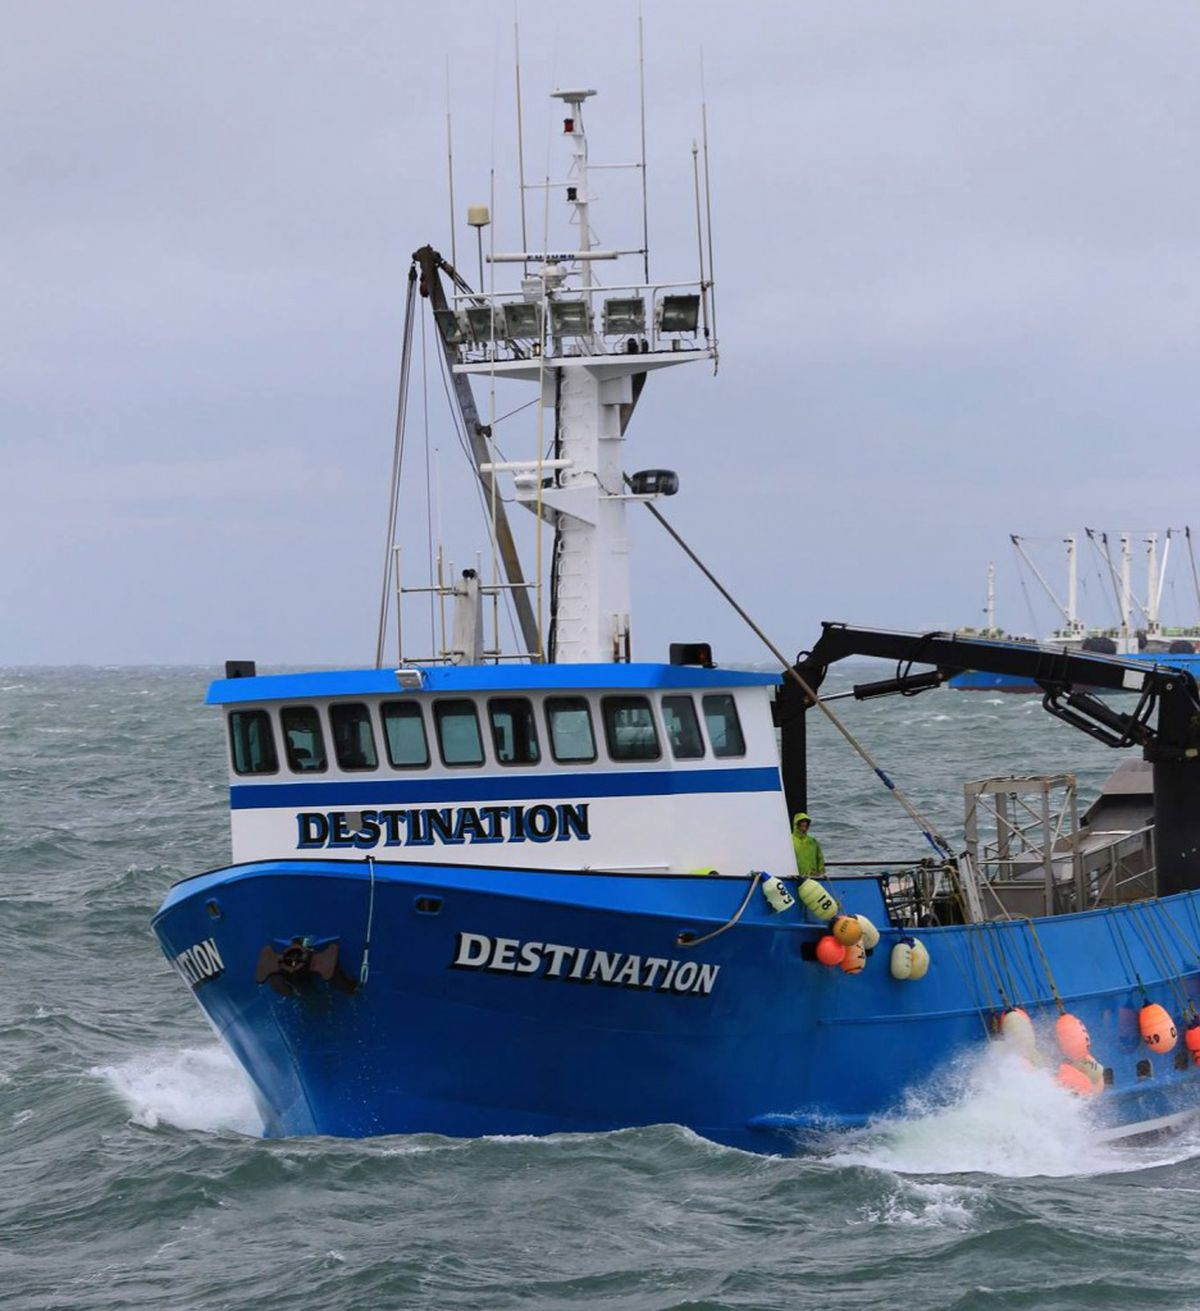 The search continues on Sunday, Feb. 12, 2017, for the 92-foot fishing vessel Destination with six people aboard missing in the Bering Sea. The Destination sent out an emergency beacon on Saturday morning from a position about 2 miles northwest of St. George Island. (Jack Molan Photography)